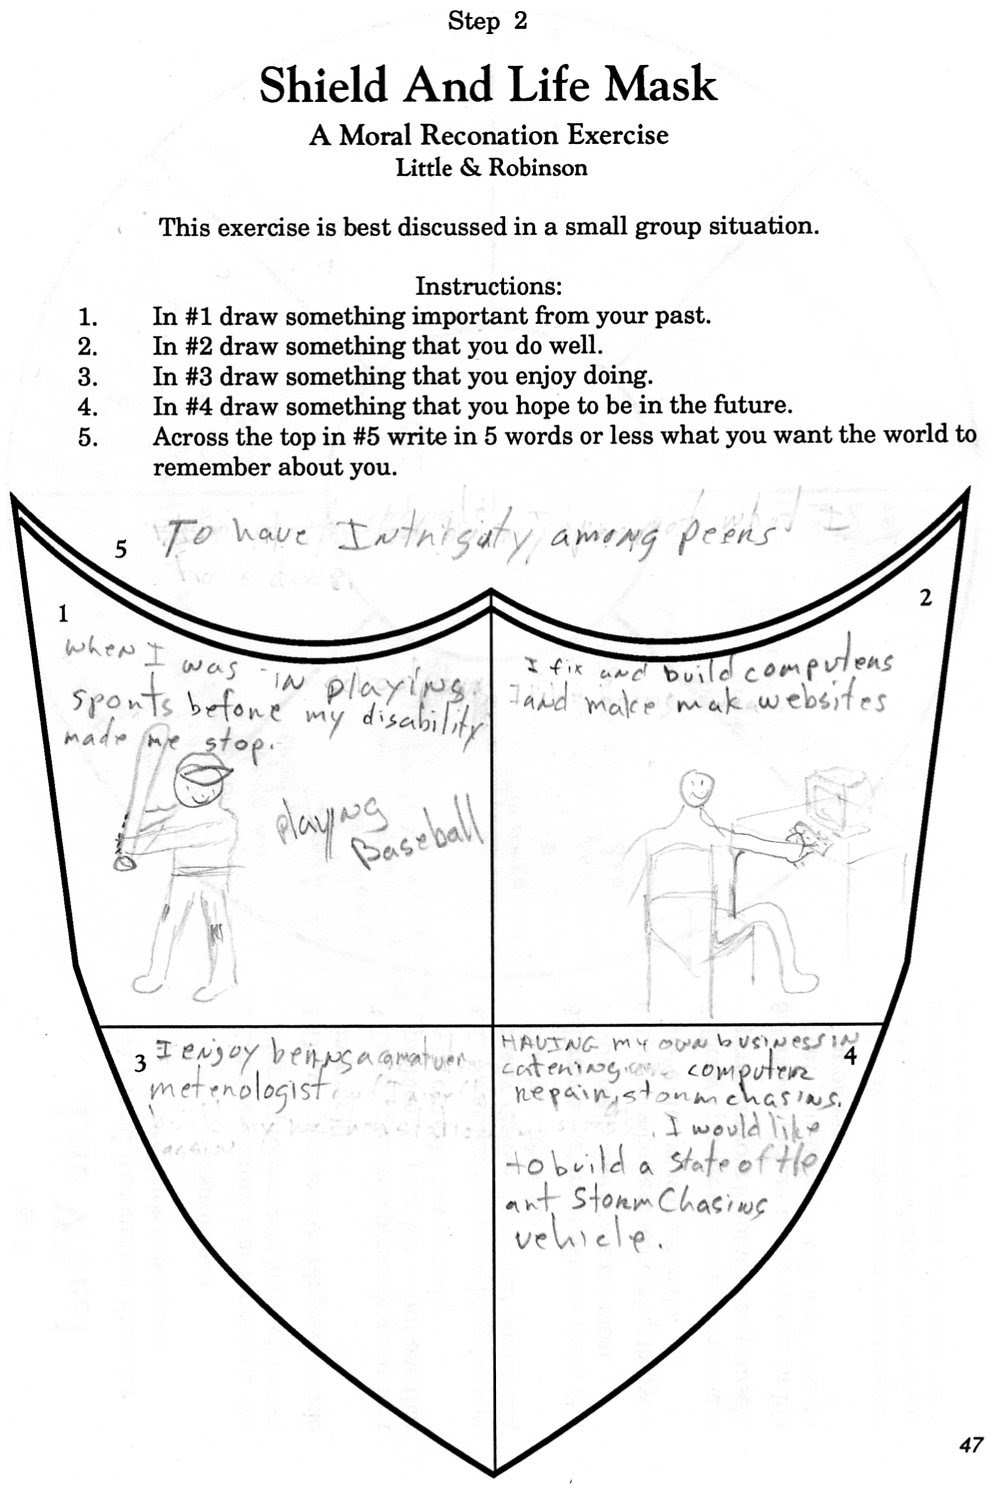 worksheet Aa Step 2 Worksheet drugcourt caryhayes2003 step 2 shieldandlifemask jpg